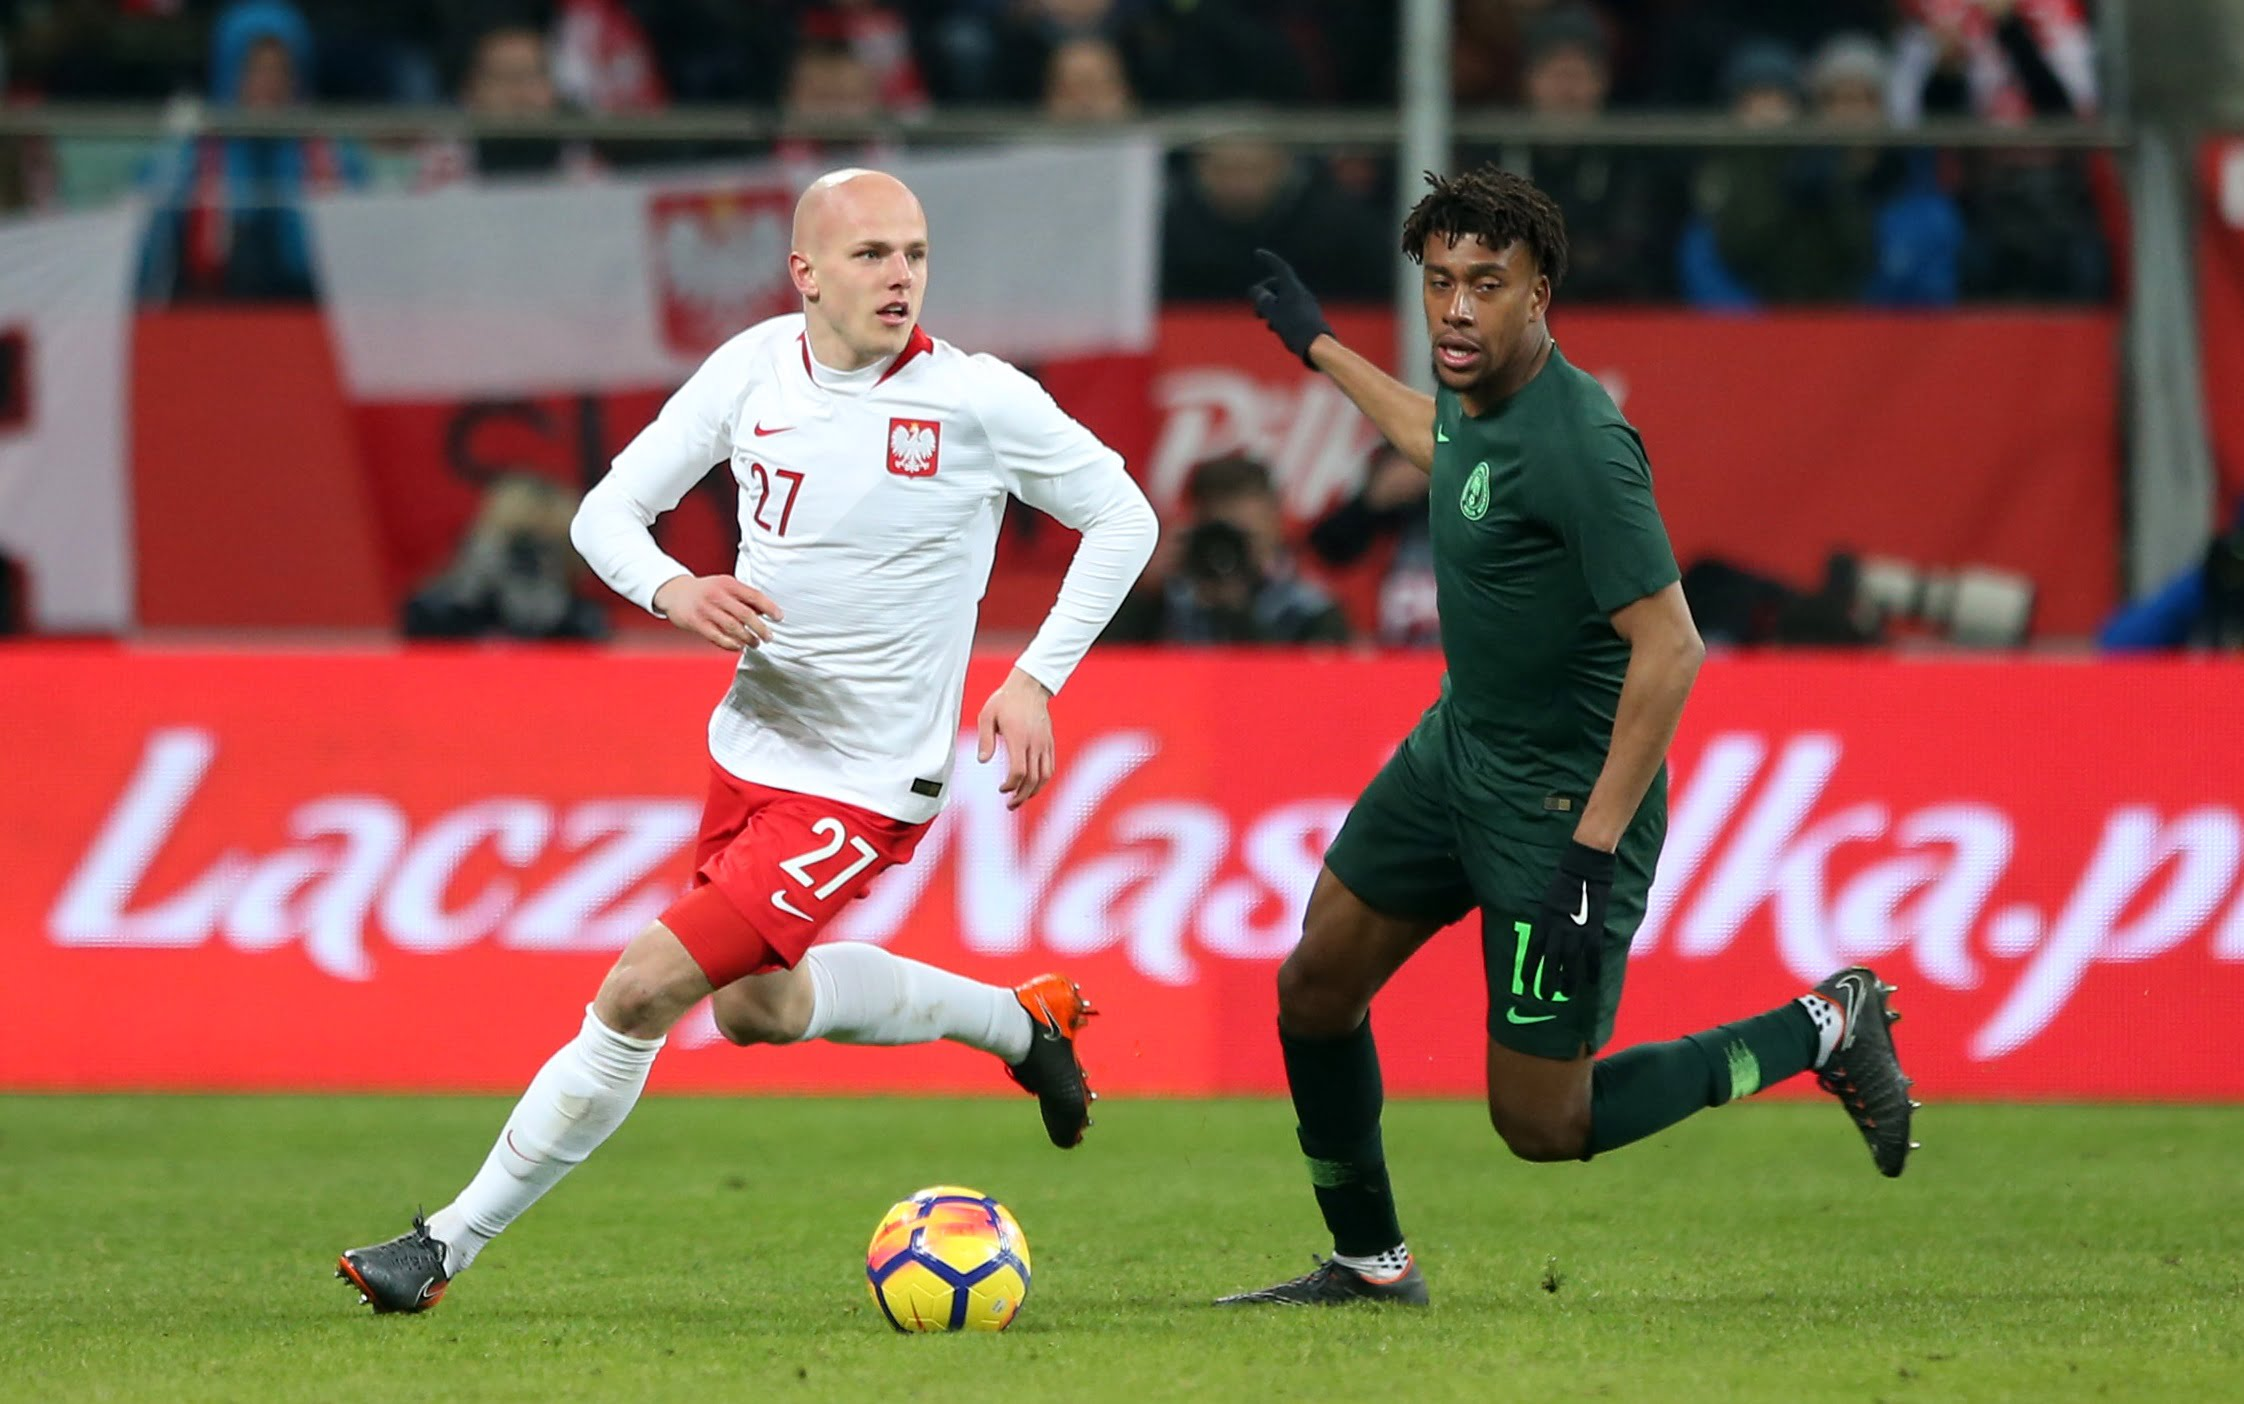 WROCLAW 23.03.2018 MIEDZYNARODOWY MECZ TOWARZYSKI: POLSKA - NIGERIA --- INTERNATIONAL FRIENDLY FOOTBALL MATCH: POLAND - NIGERIA RAFAL KURZAWA ALEX IWOBI FOT. PIOTR KUCZA/ 400mm.pl